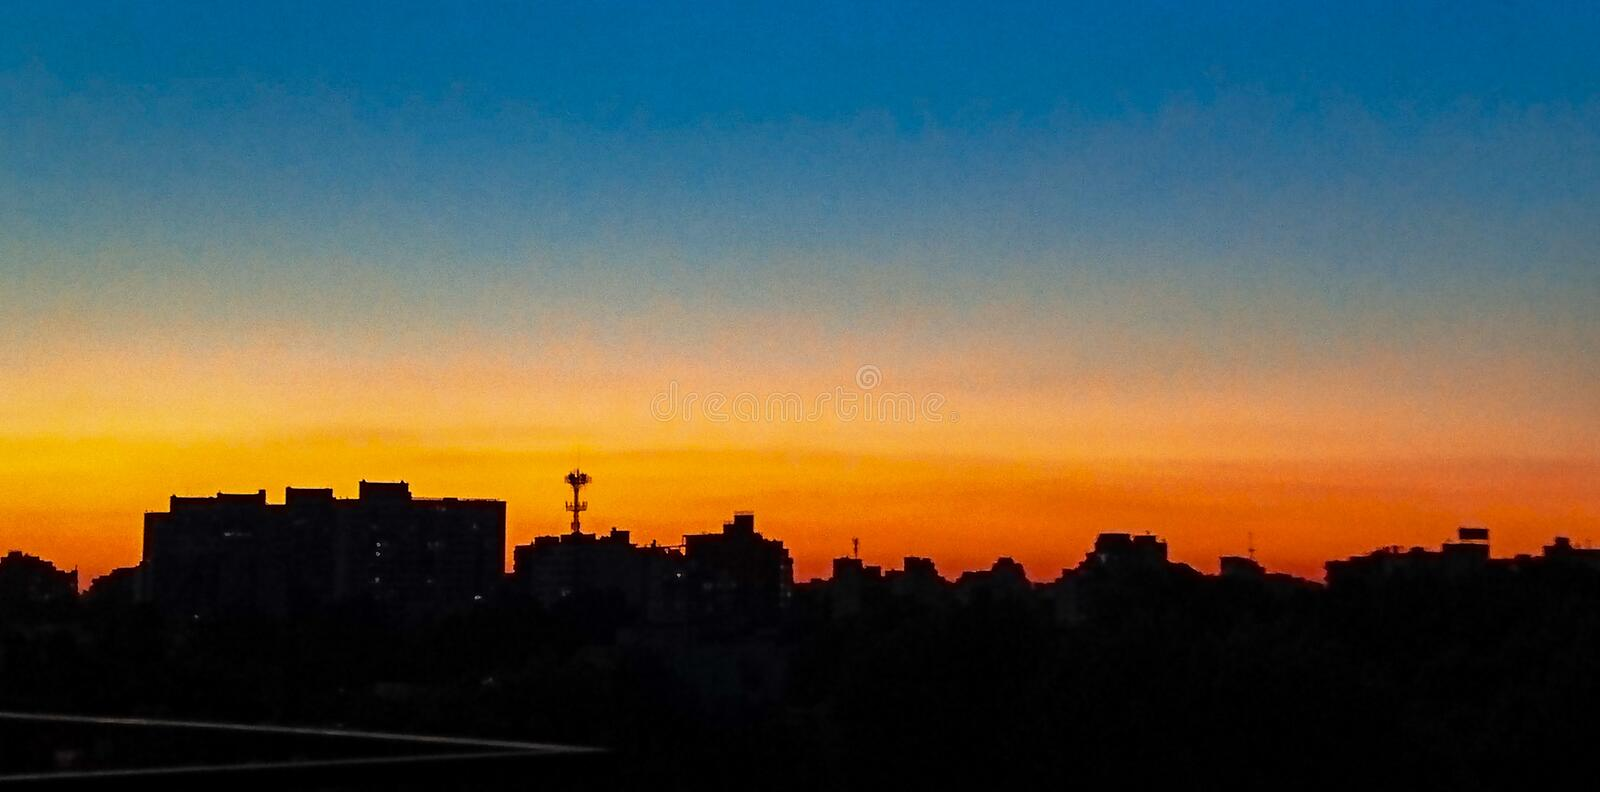 Sunset in the city orange and blue hour sky stock image